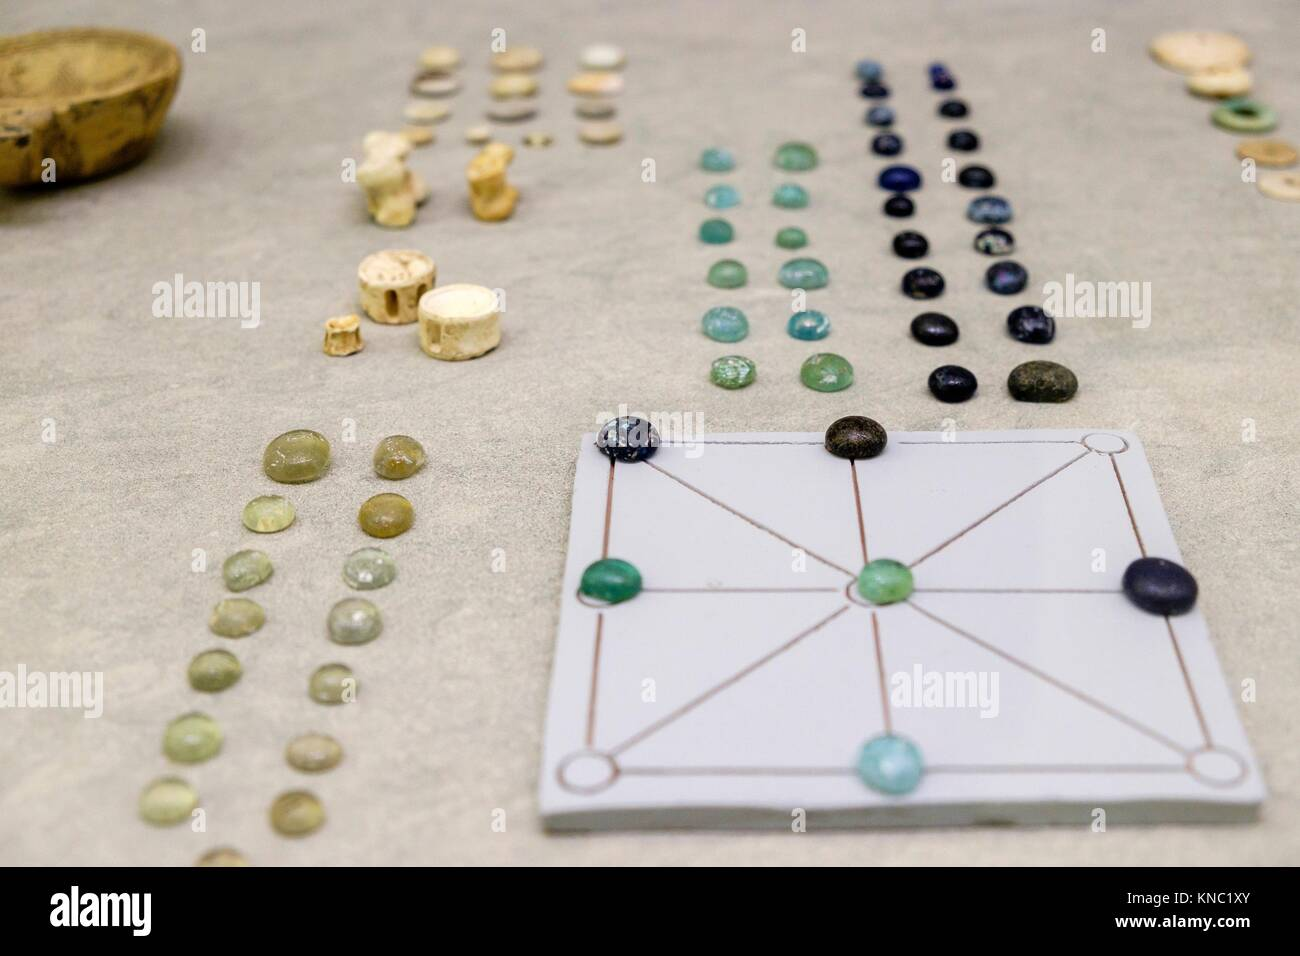 Game chips, dice and board, 1-300 AD., Ibiza and Formentera Archeological Museum, Patrimonio de la Humanidad «Ibiza, - Stock Image